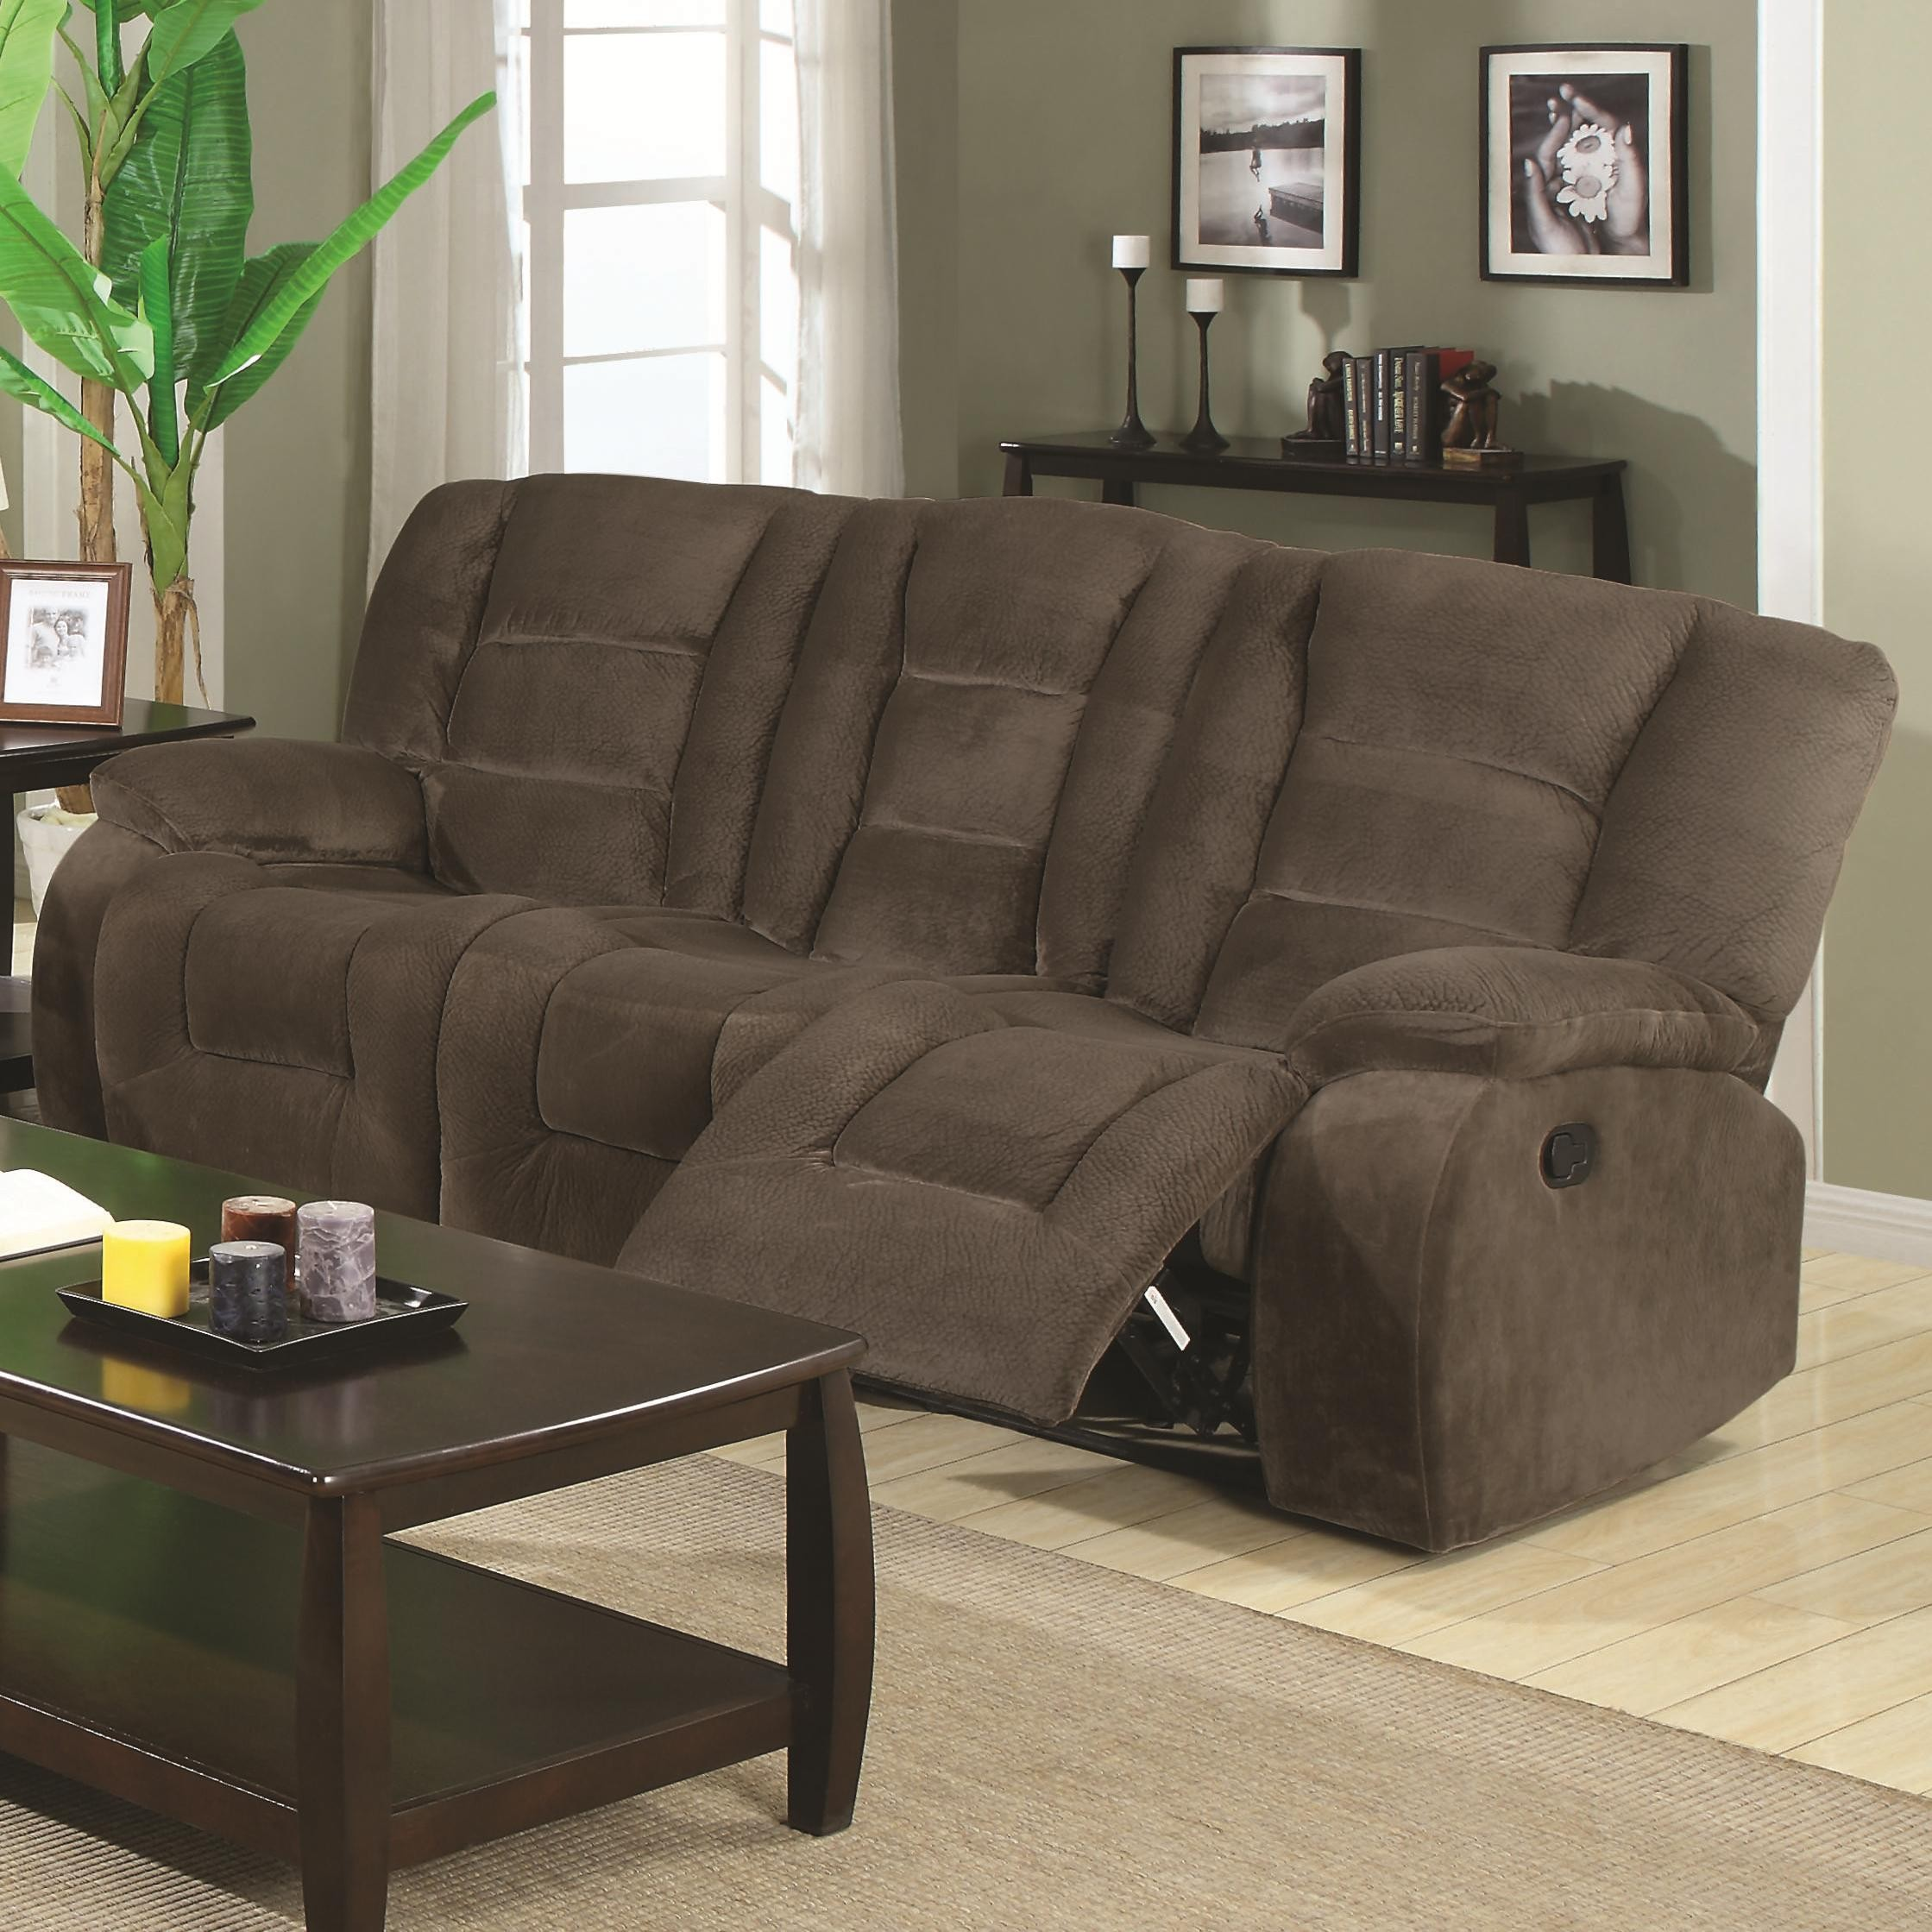 Charlie Collection 600991 Padded Velvet Reclining Sofa Loveseat Set & reclining sofa loveseat set | Centerfieldbar.com islam-shia.org